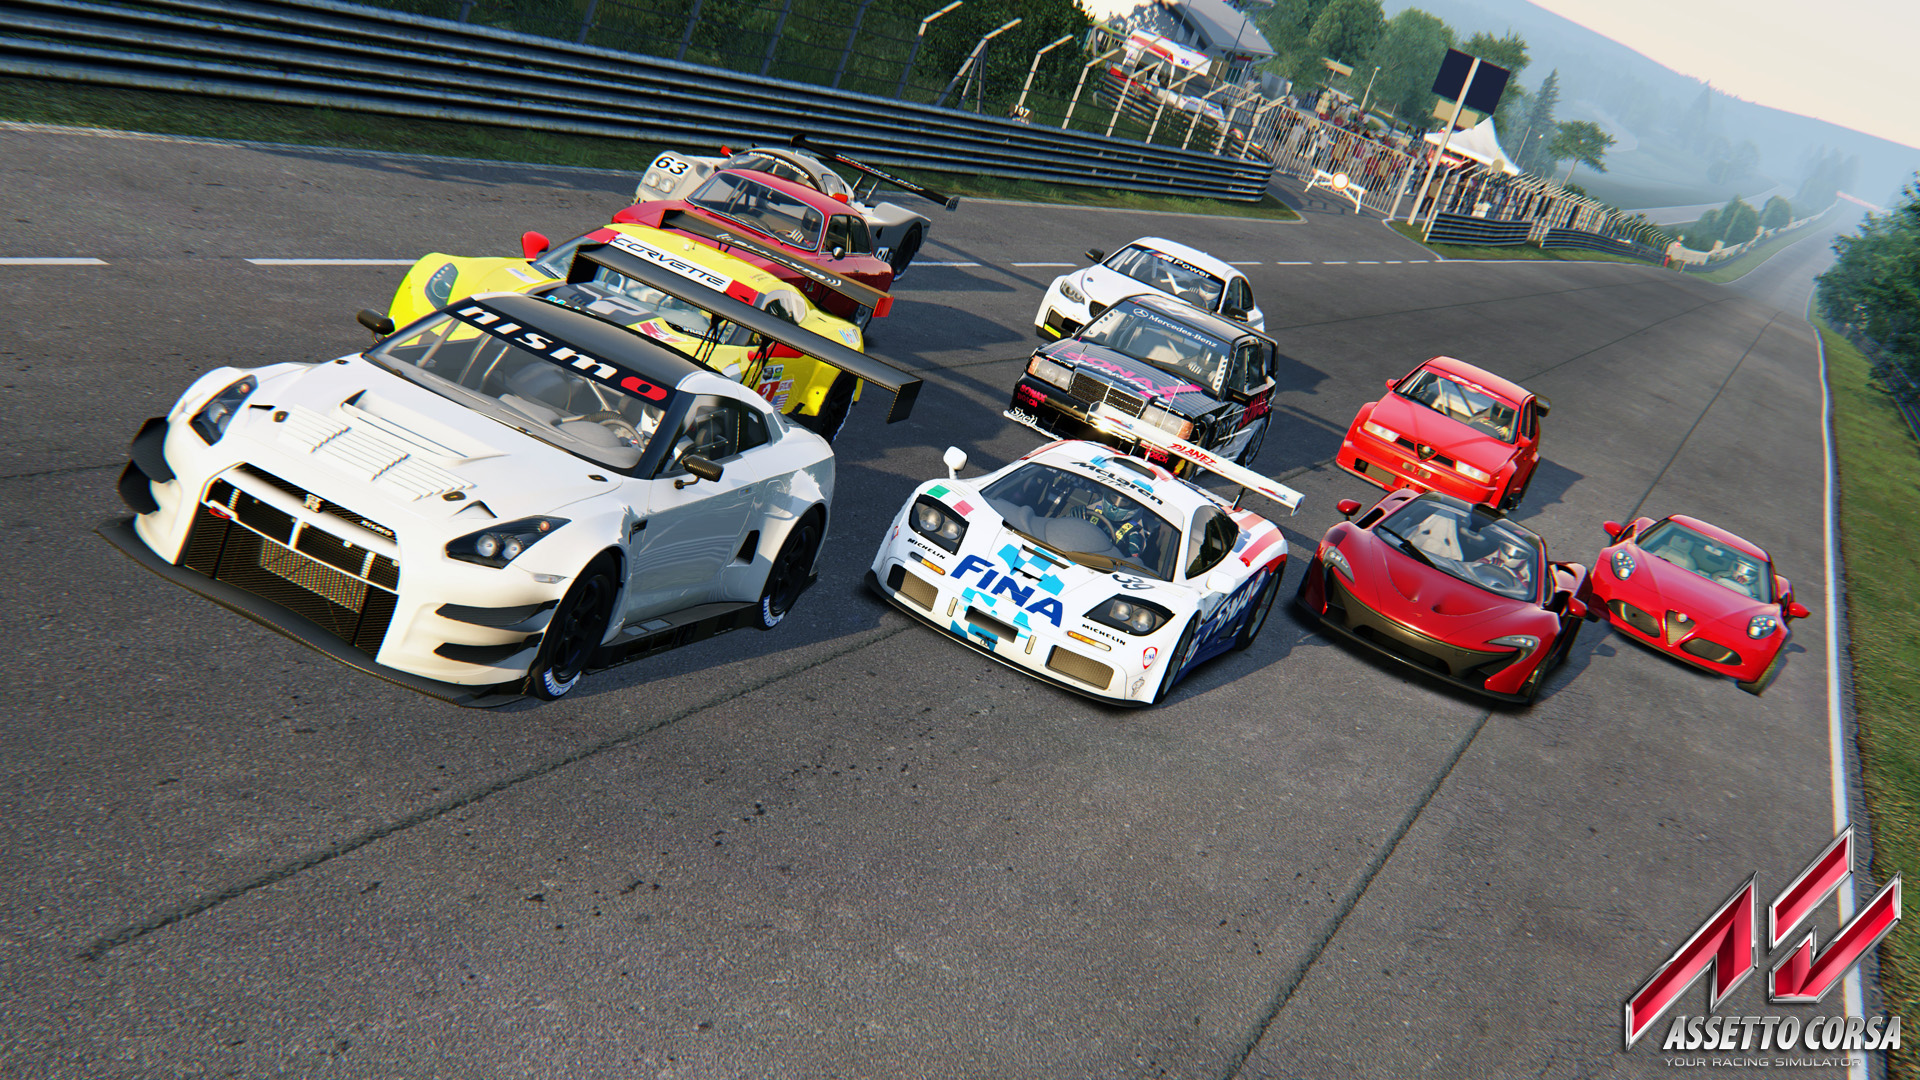 Assetto Corsa Arrives To Playstation 4 Xbox One On April 22 Ps4